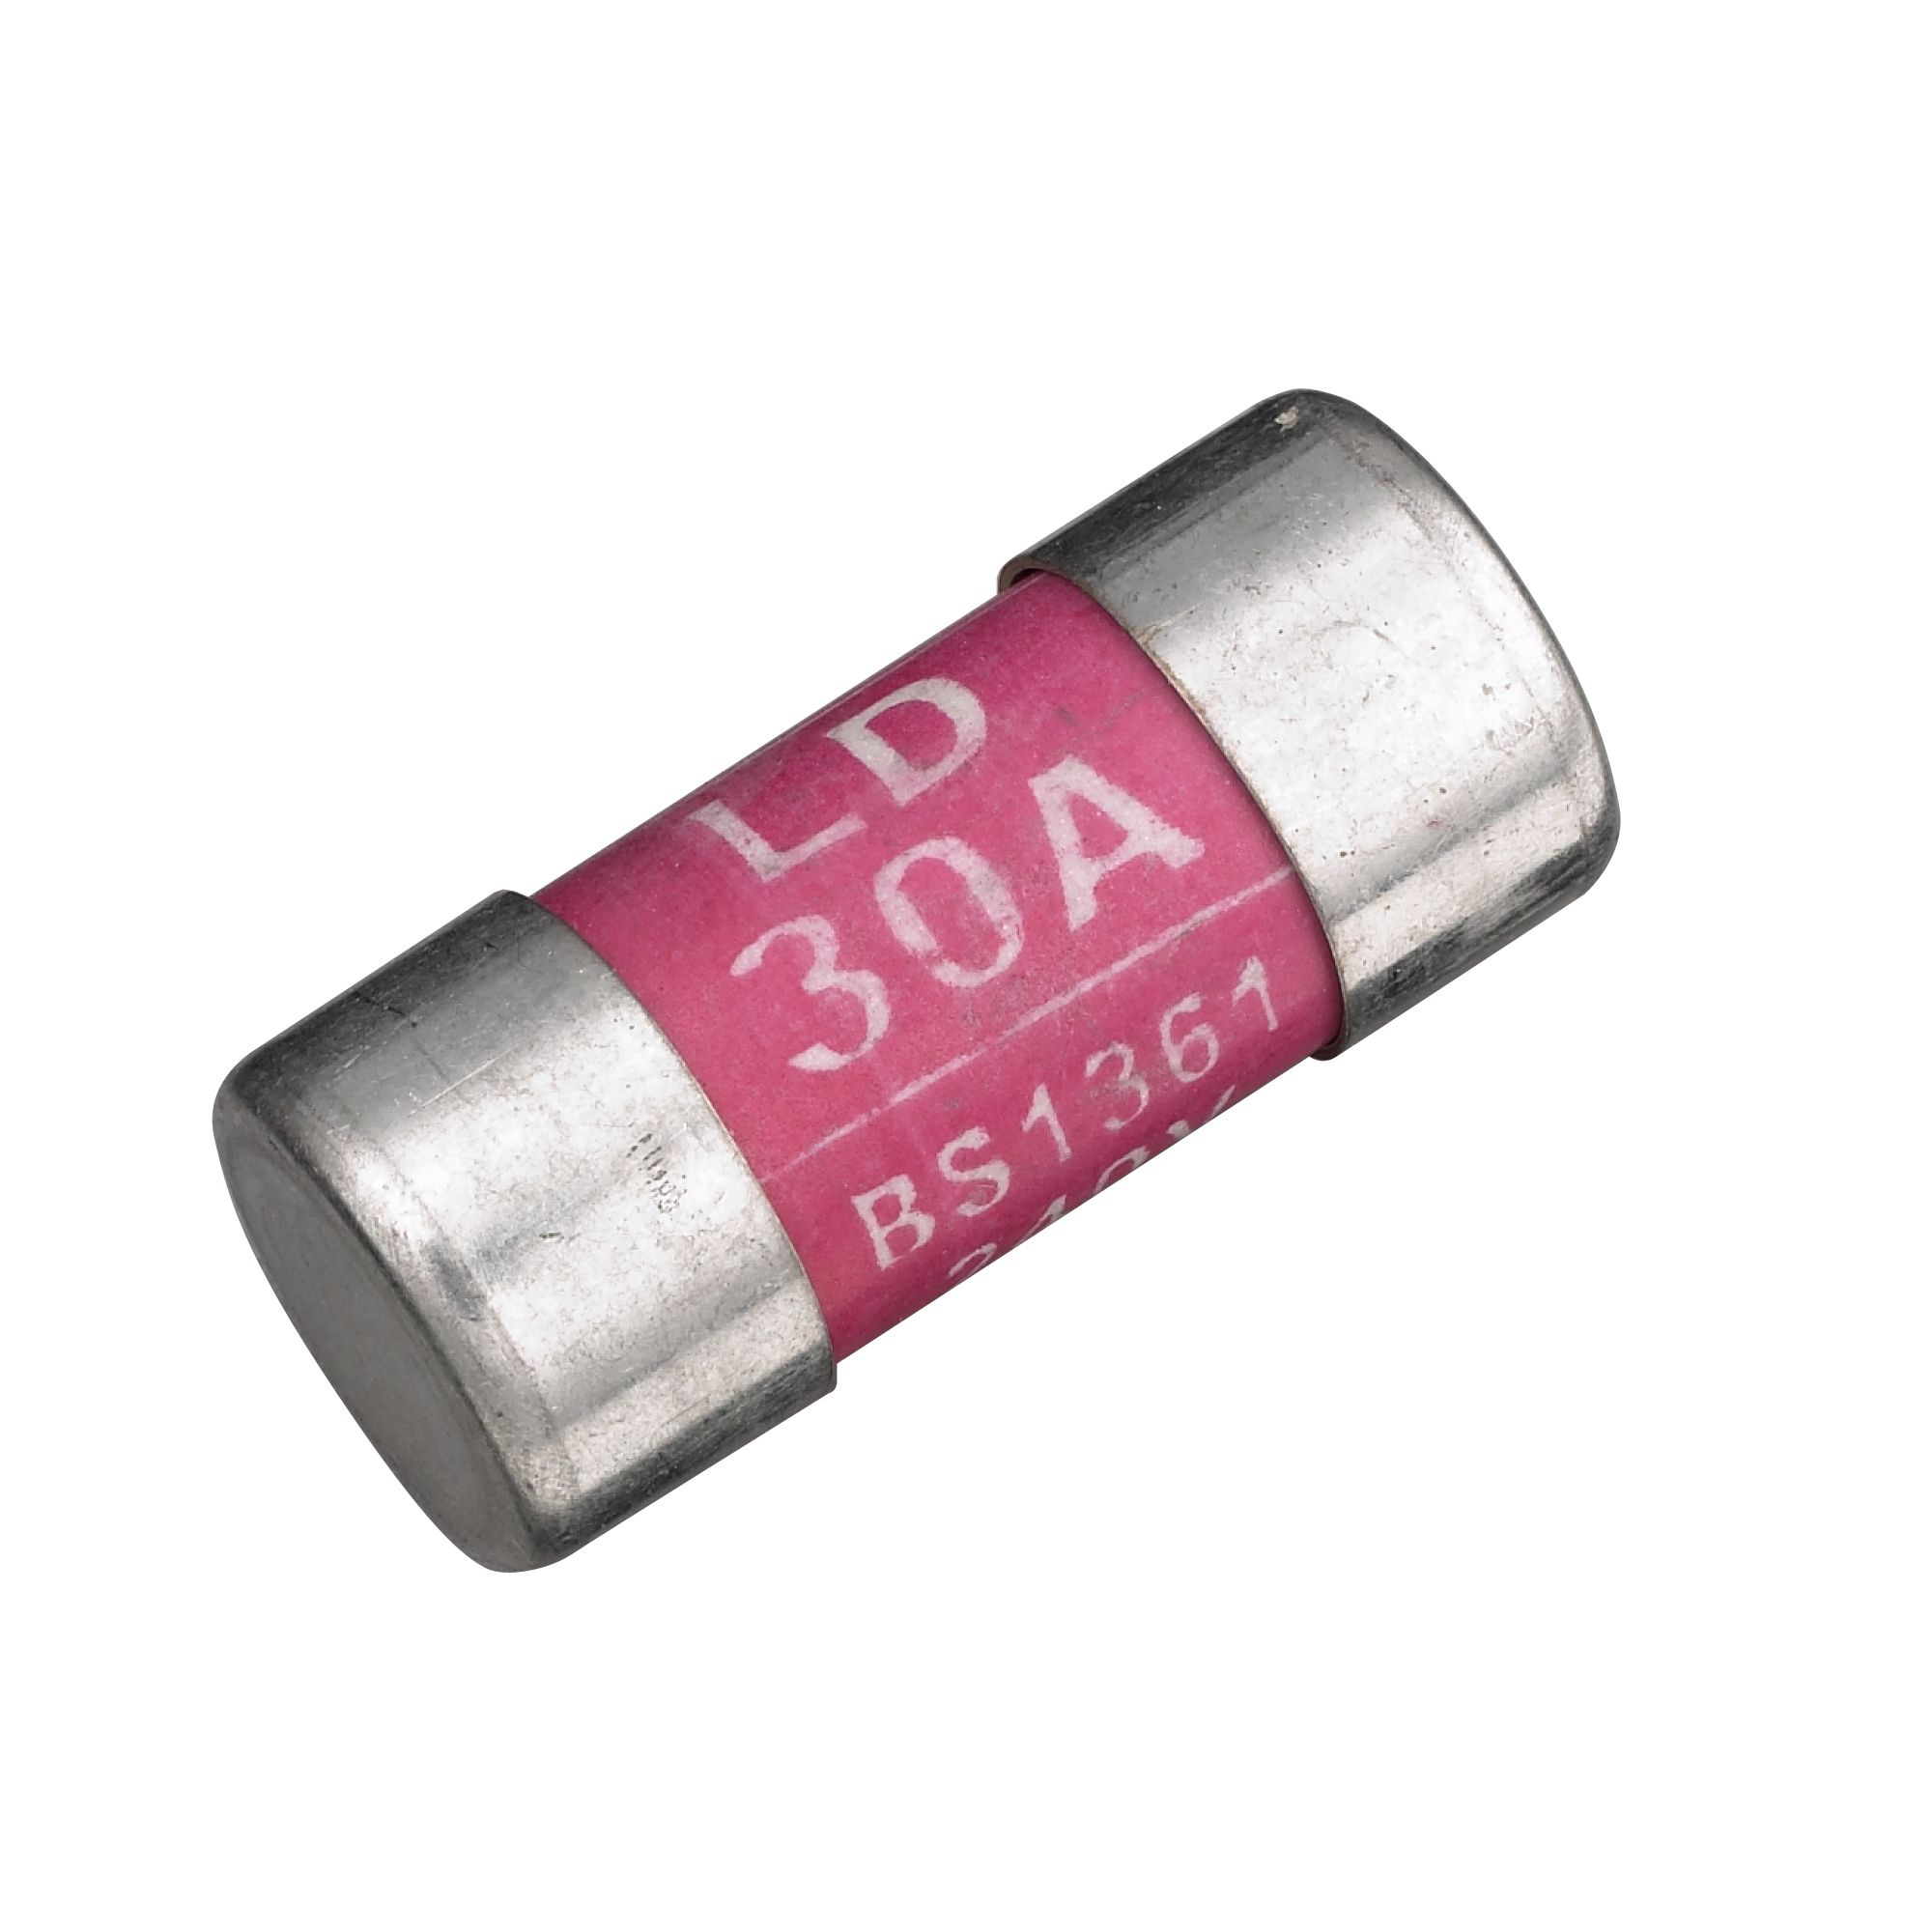 Wylex 30A Fuse | Departments | DIY at B&Q.